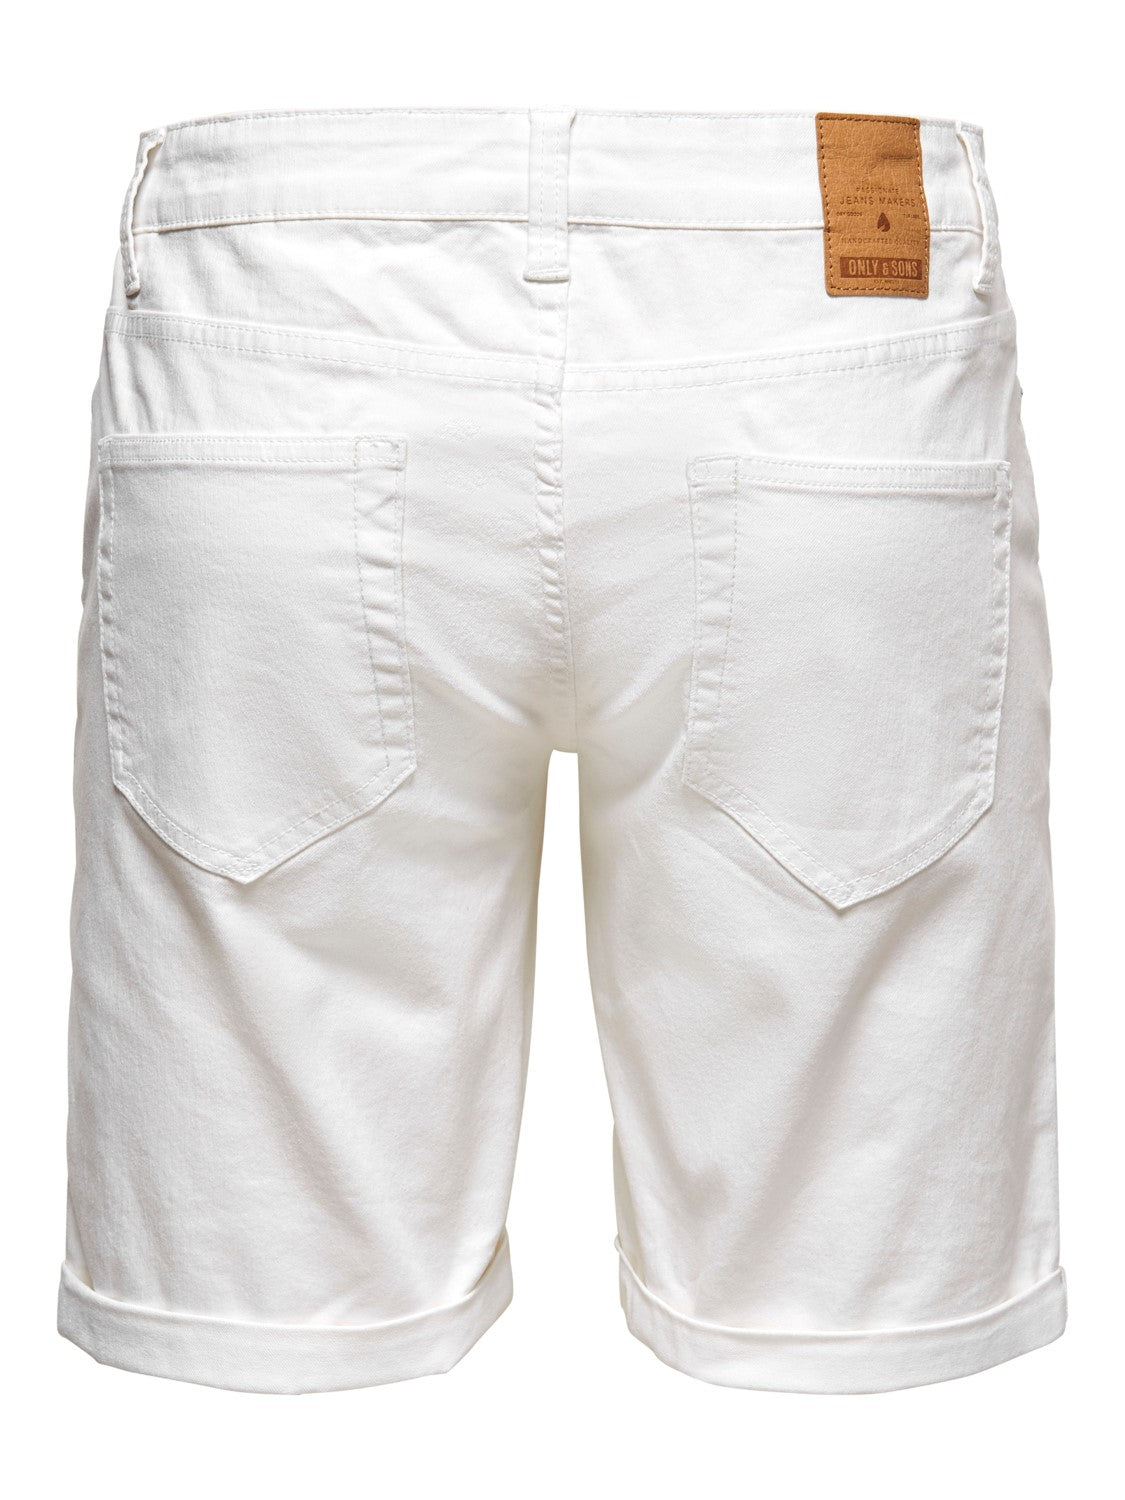 PLY REG LIFE SHORT WHITE PK - Hvid - Only & Sons